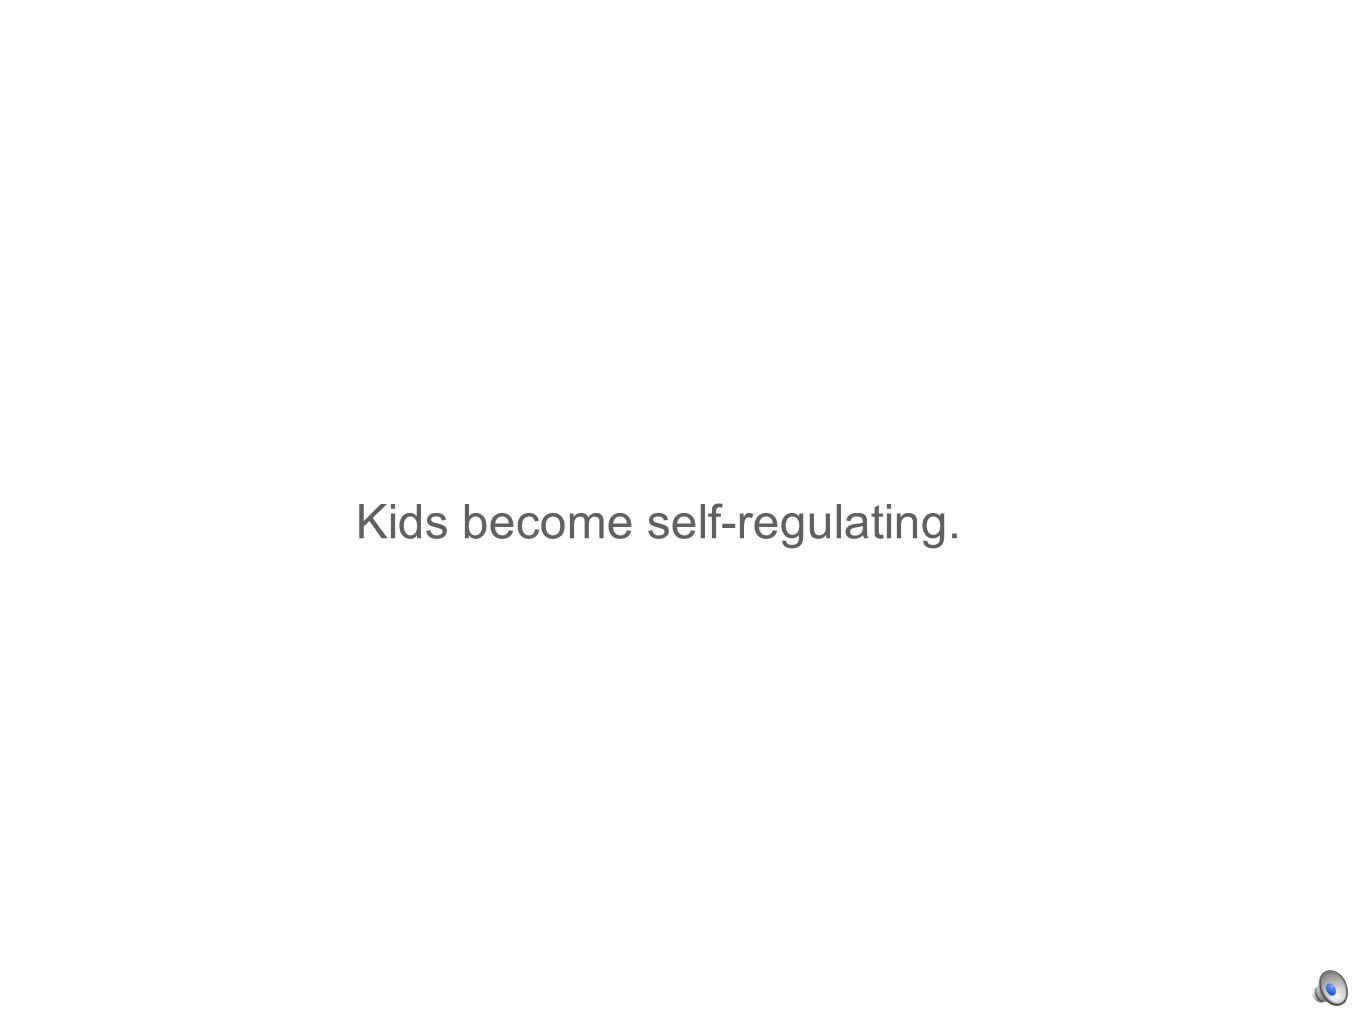 Kids become self-regulating.